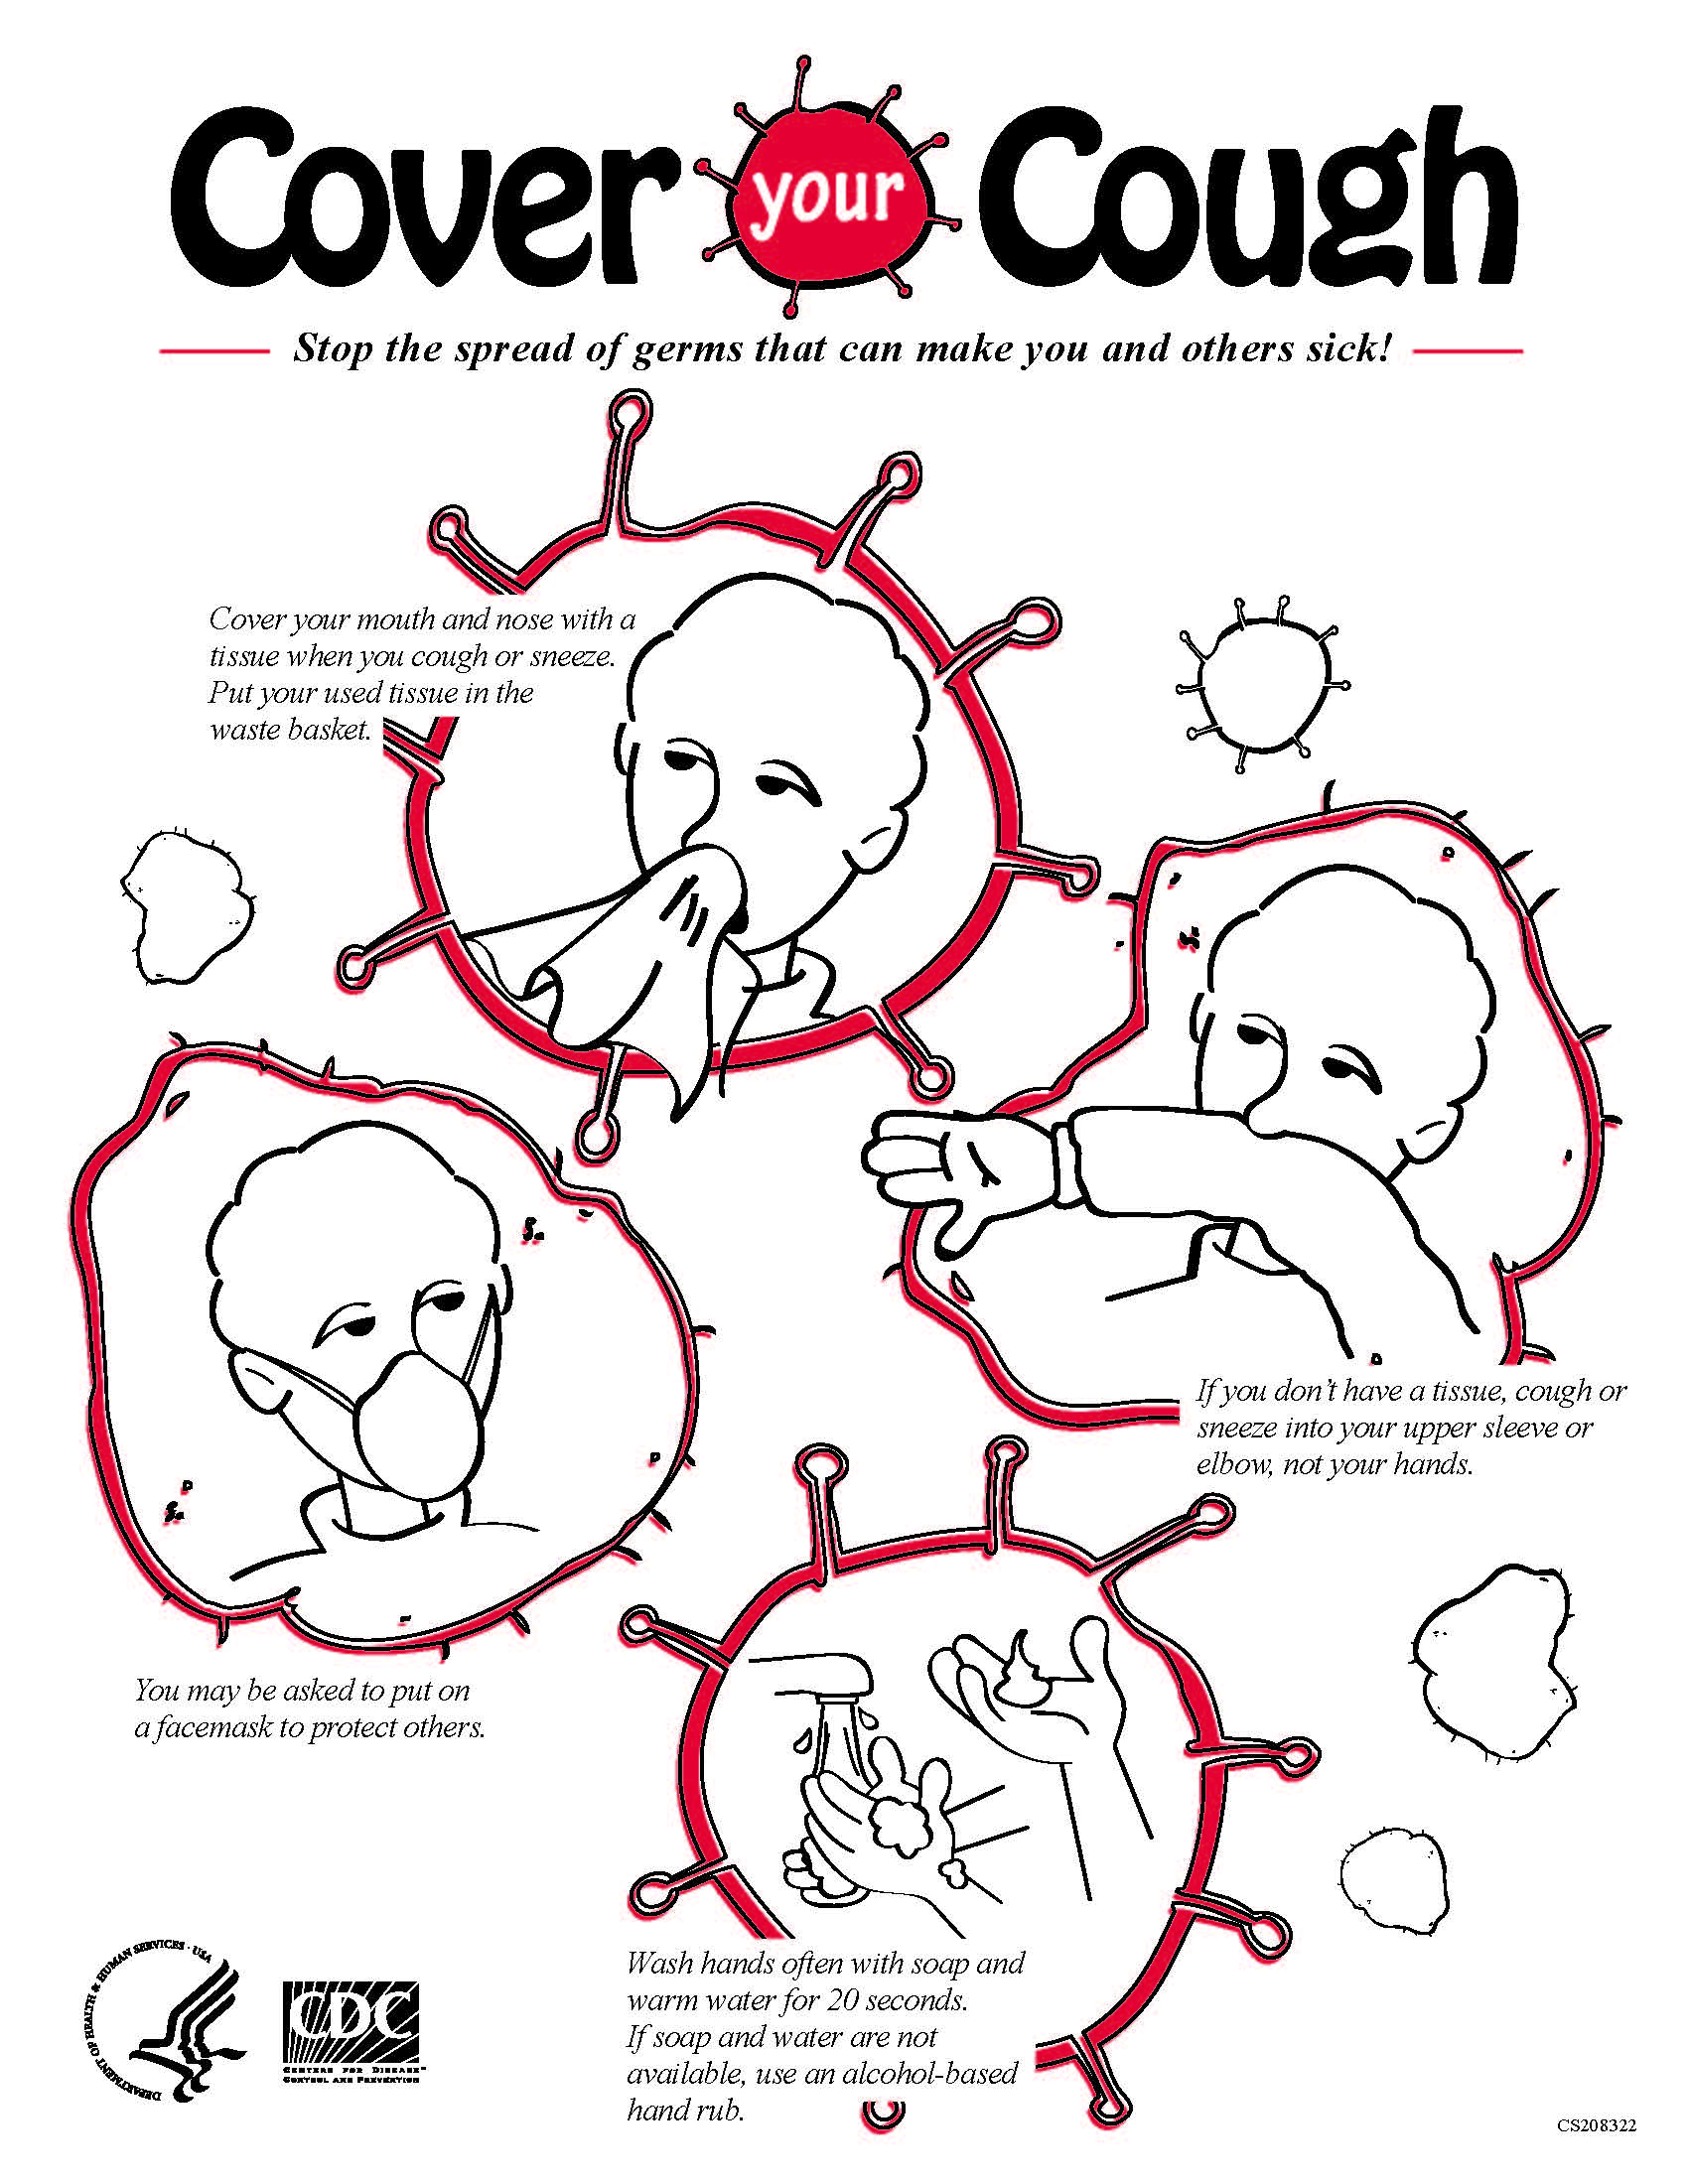 Coughing And Sneezing Etiquette